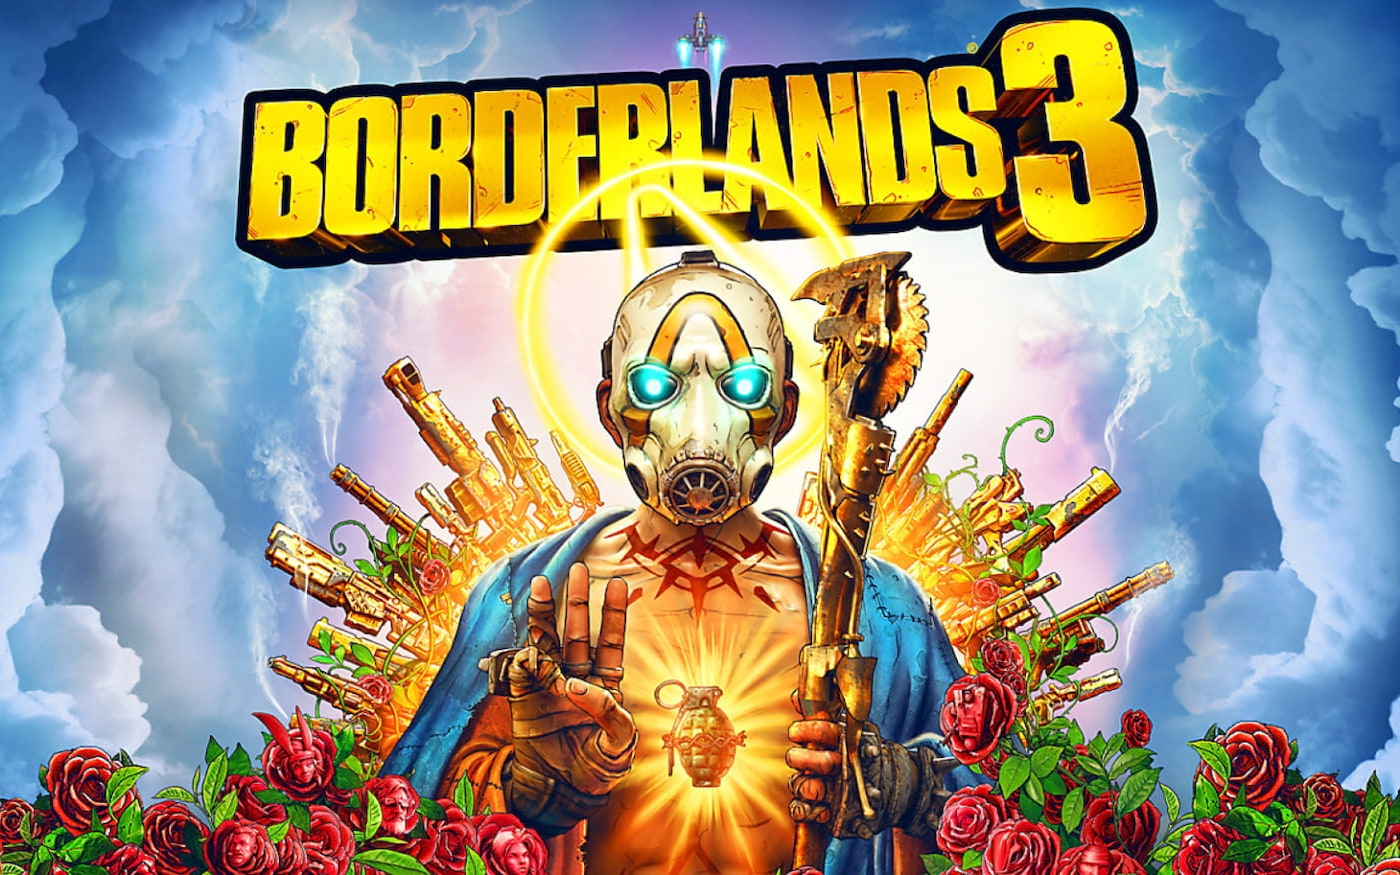 BORDERLANDS 3: Requisitos mínimos e recomendados